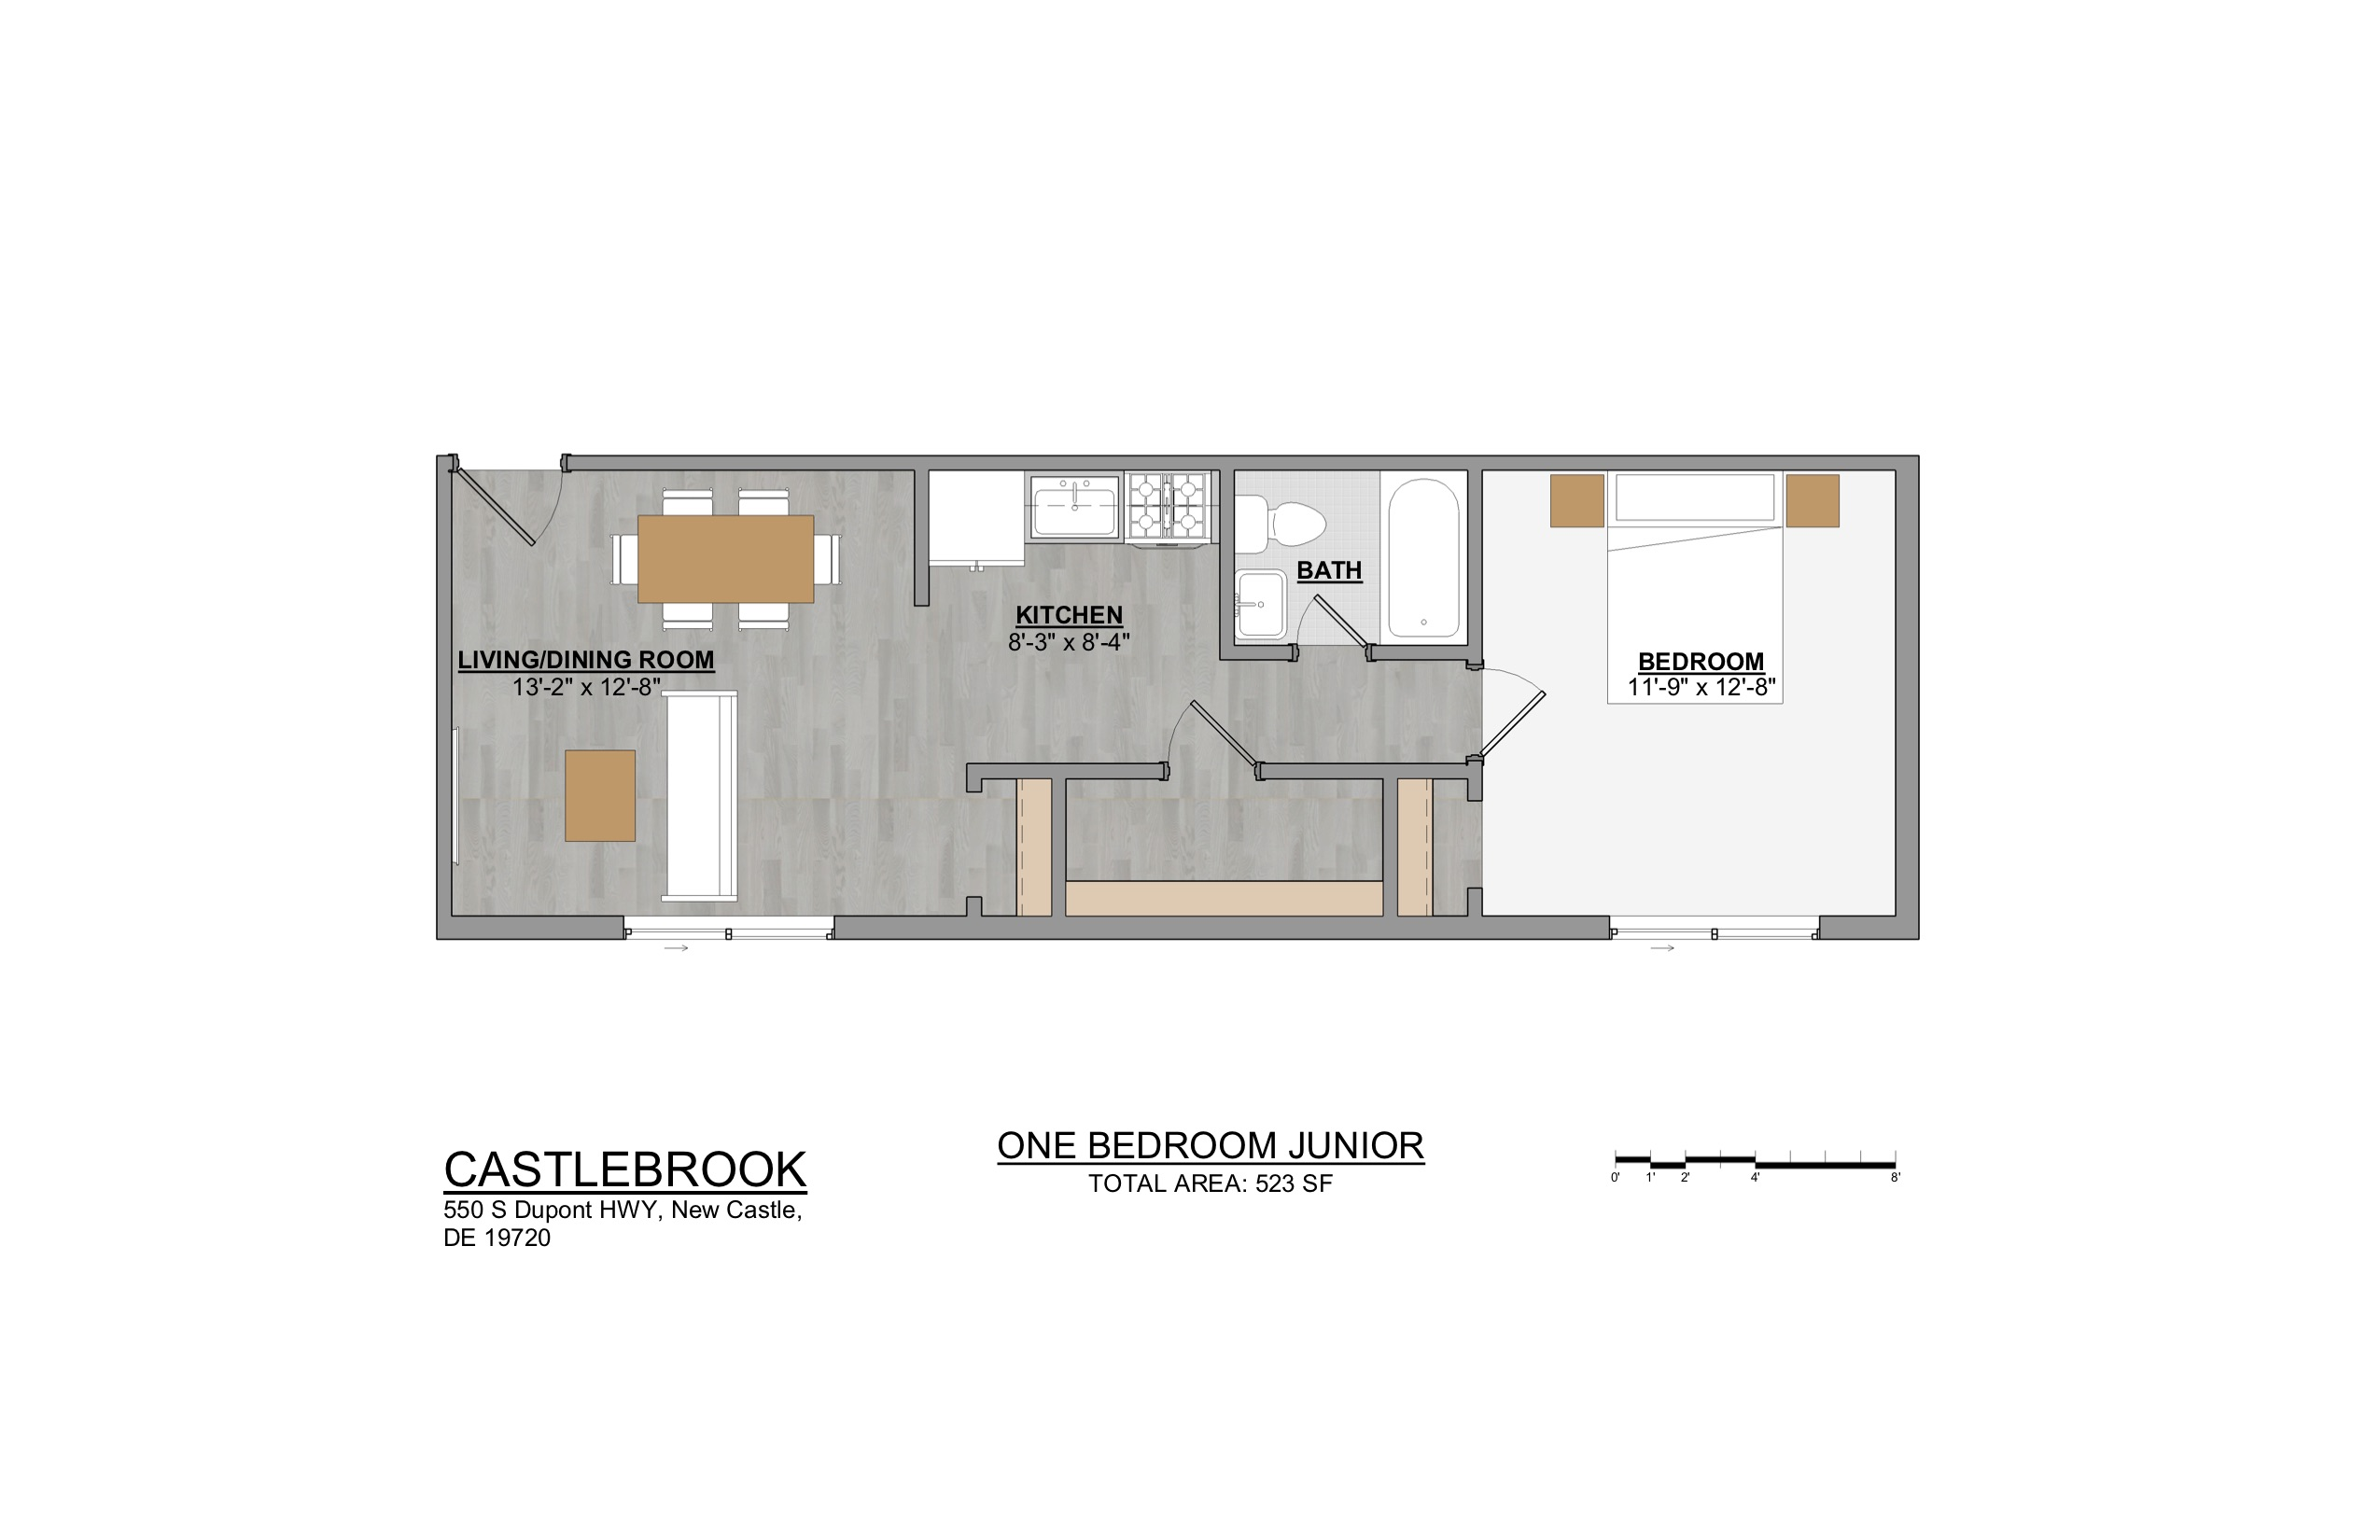 Castlebrook Apartments 1 Bedroom Junior